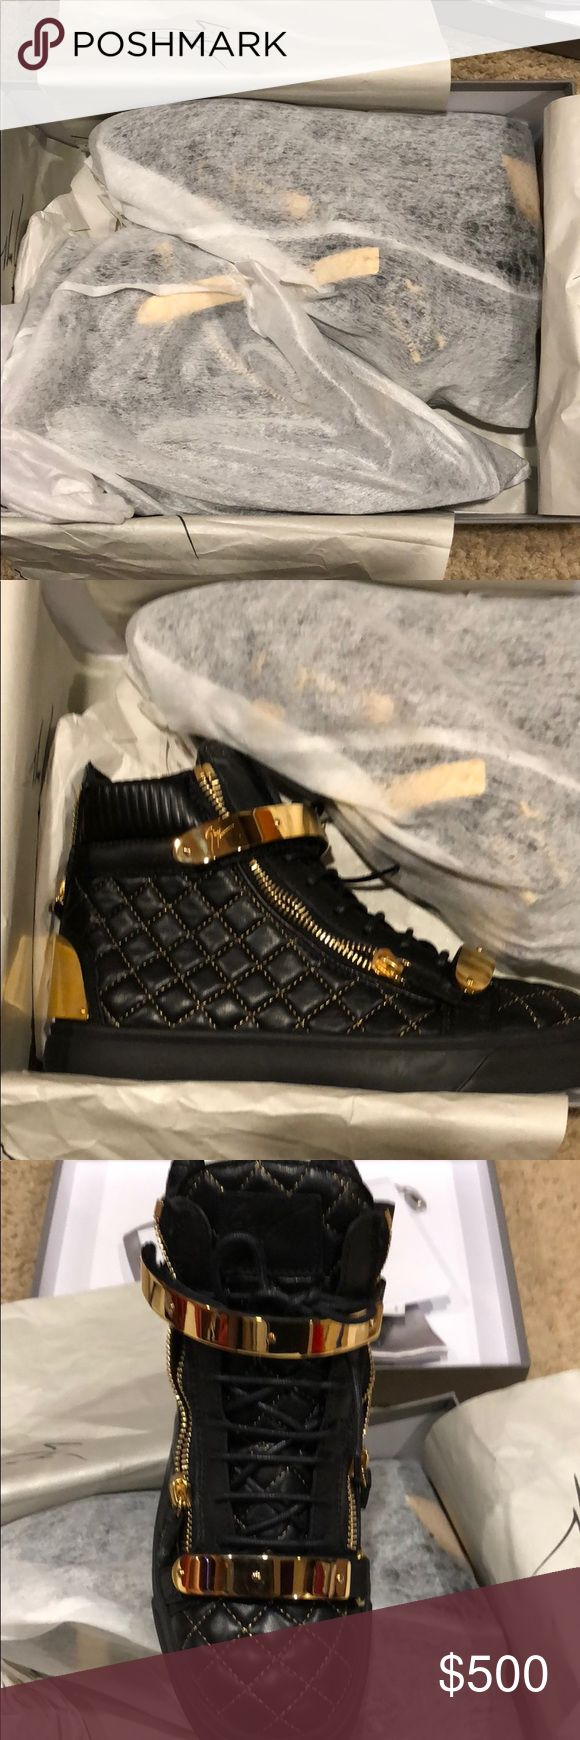 Brand New 1000% authentic Giuseppe Sneakers 42(9) Brand New 1000% authentic Giuseppe Sneakers size 42(9) with all original accessories and tags. Giuseppe Zanotti Shoes Sneakers